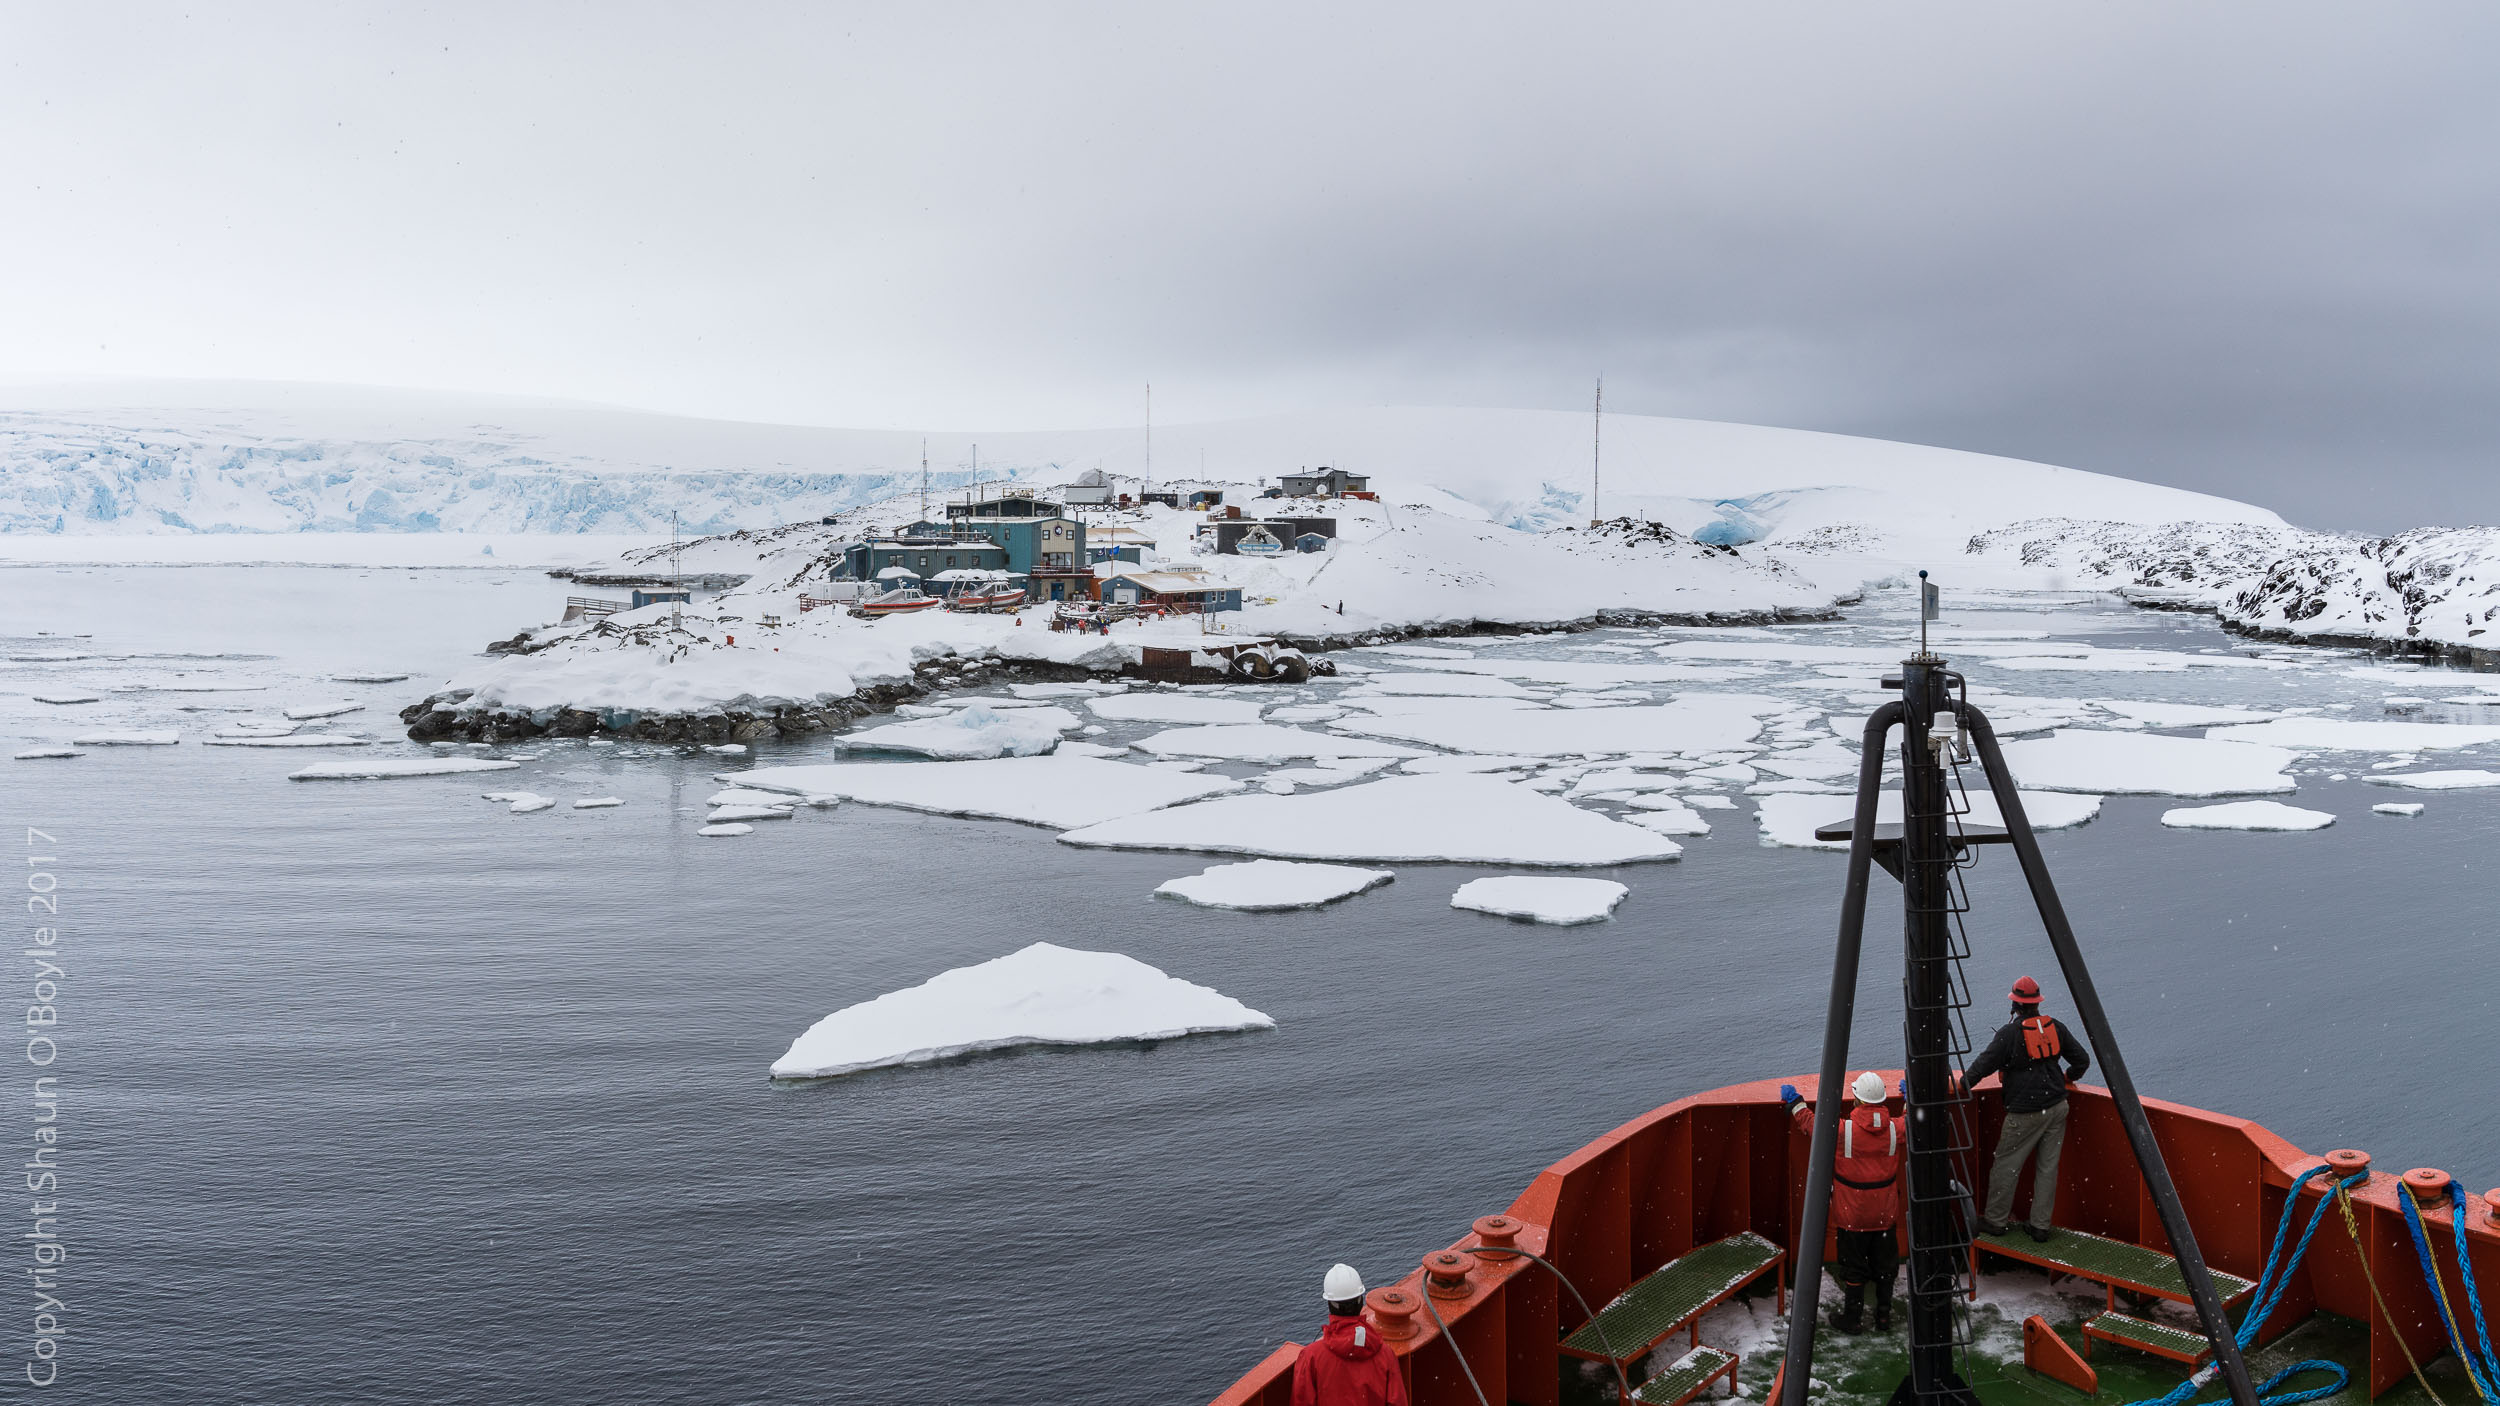 Arriving at Palmer Station on the icebreaker Laurence M. Gould after a four day passage from Punta Arenas, Chile.